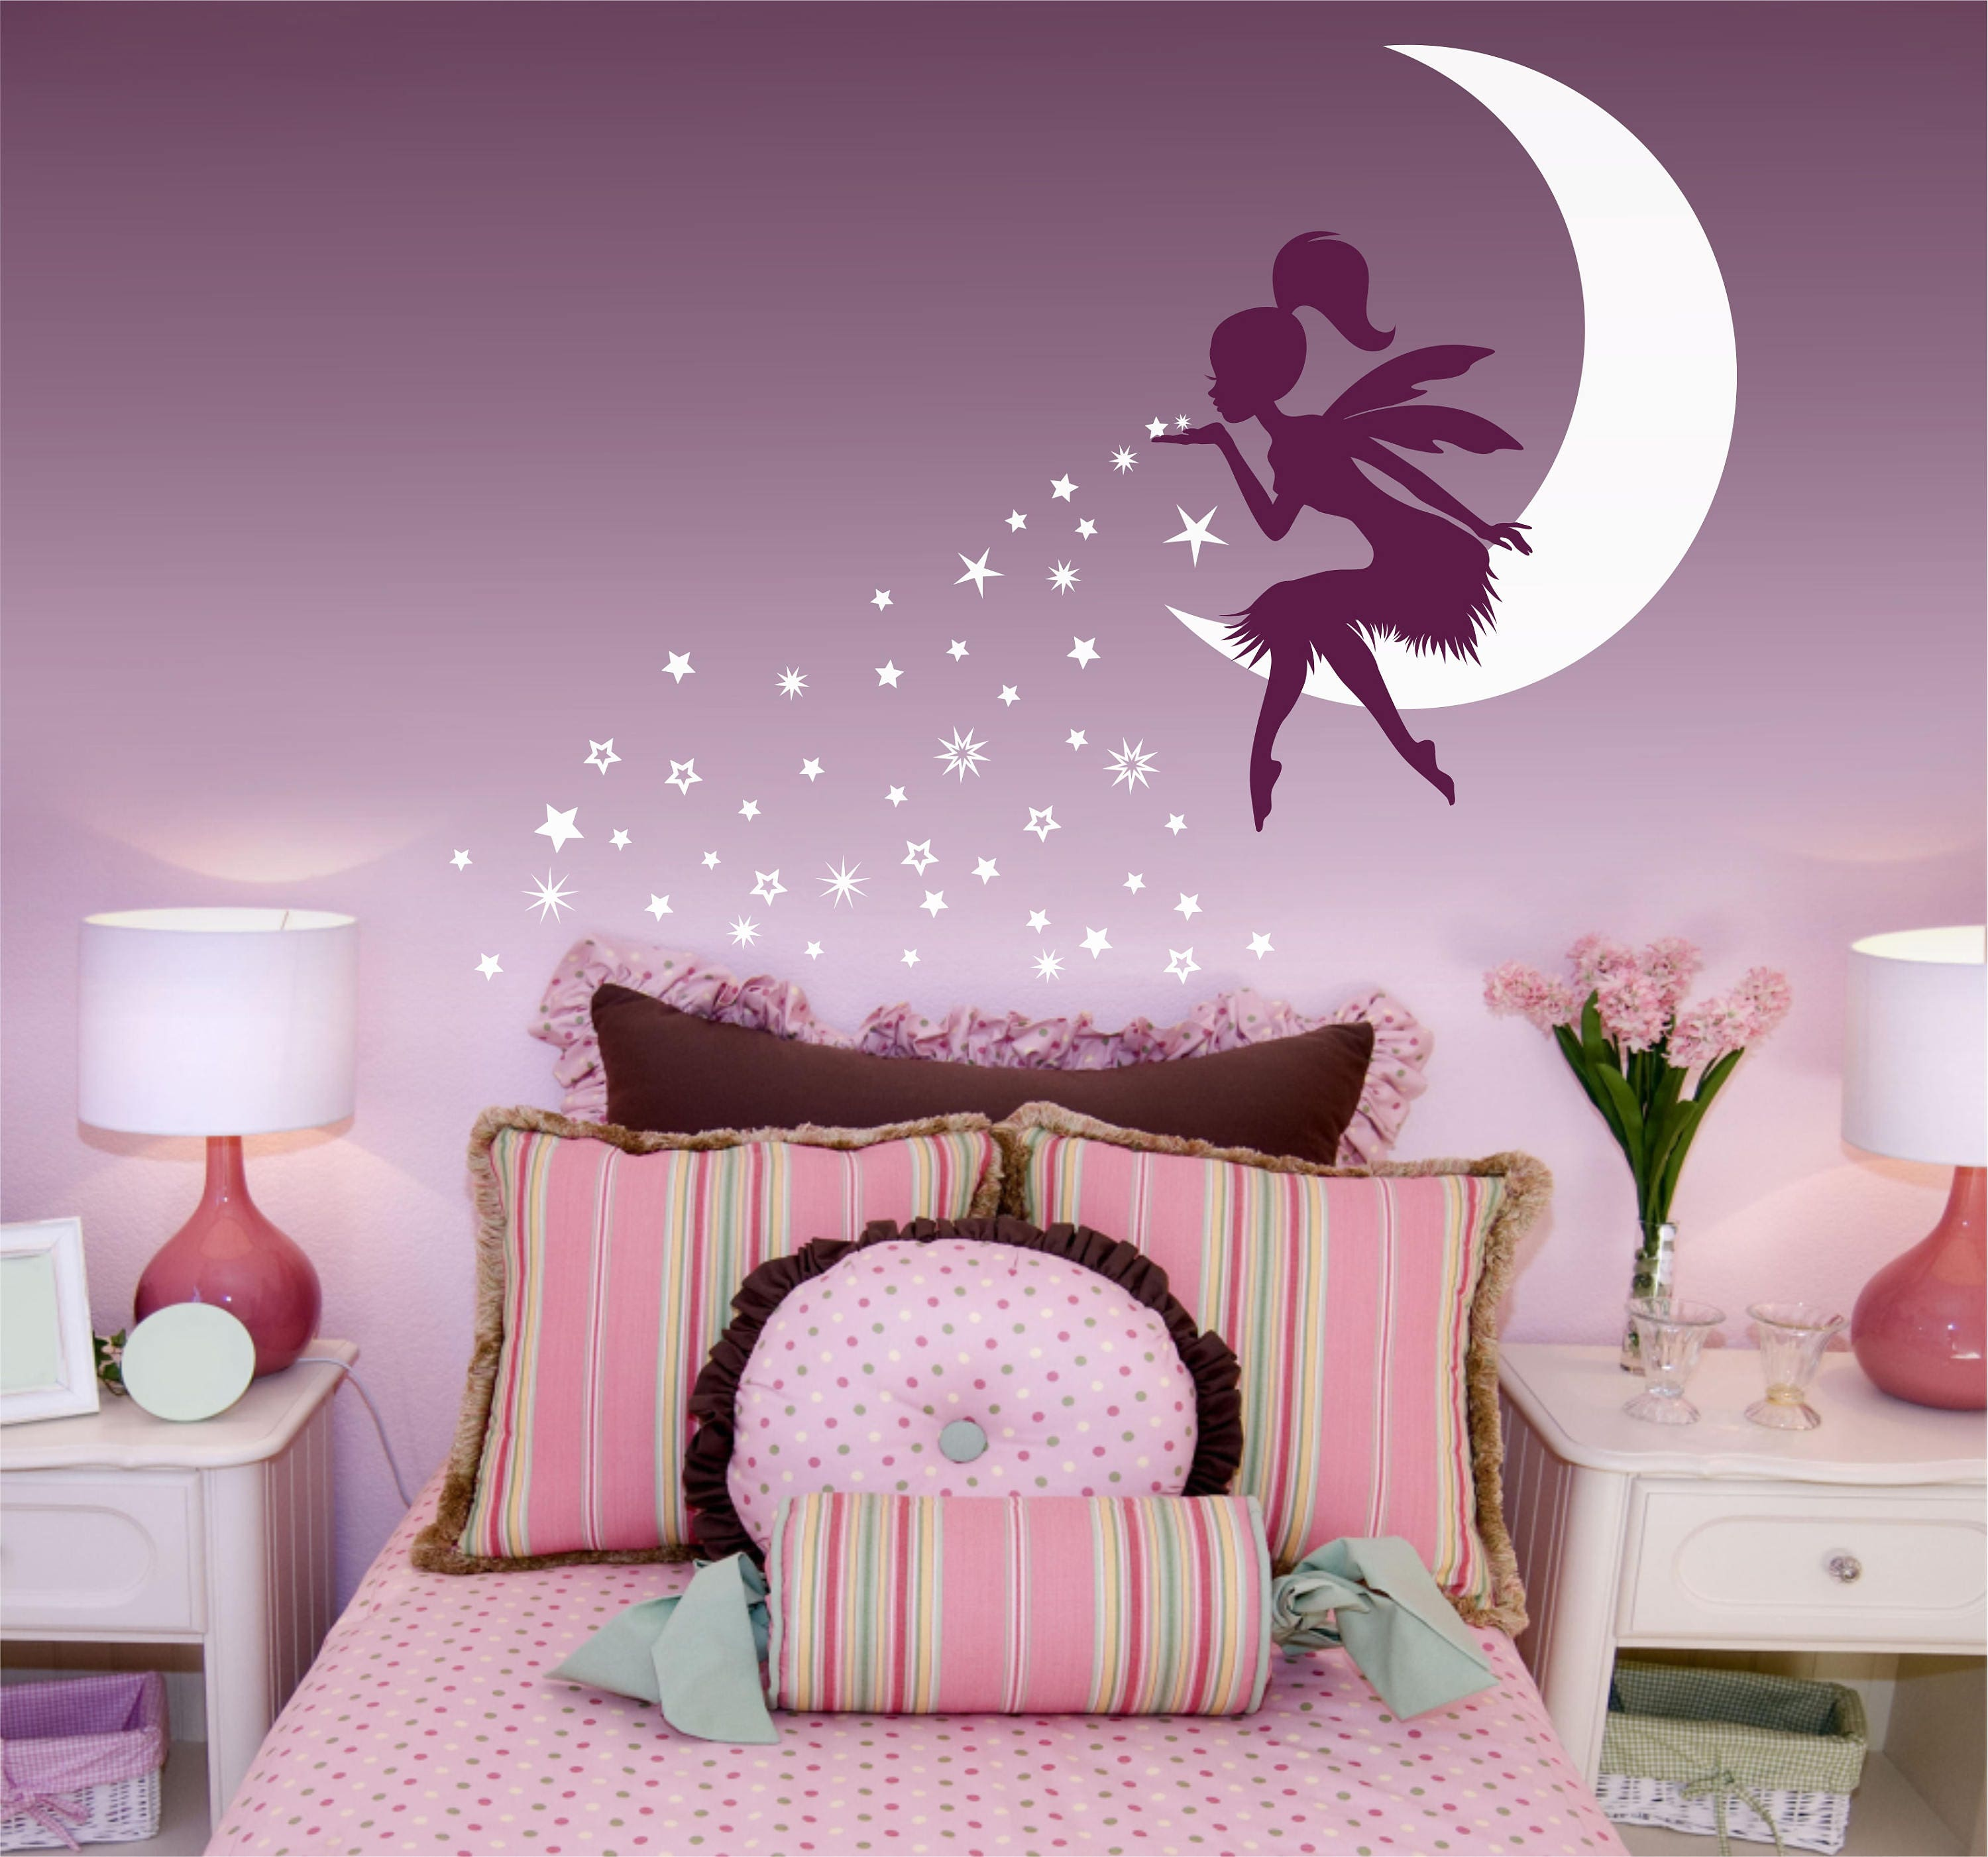 Fairy wall decal fairy blowing stars wall decal fairy zoom amipublicfo Images